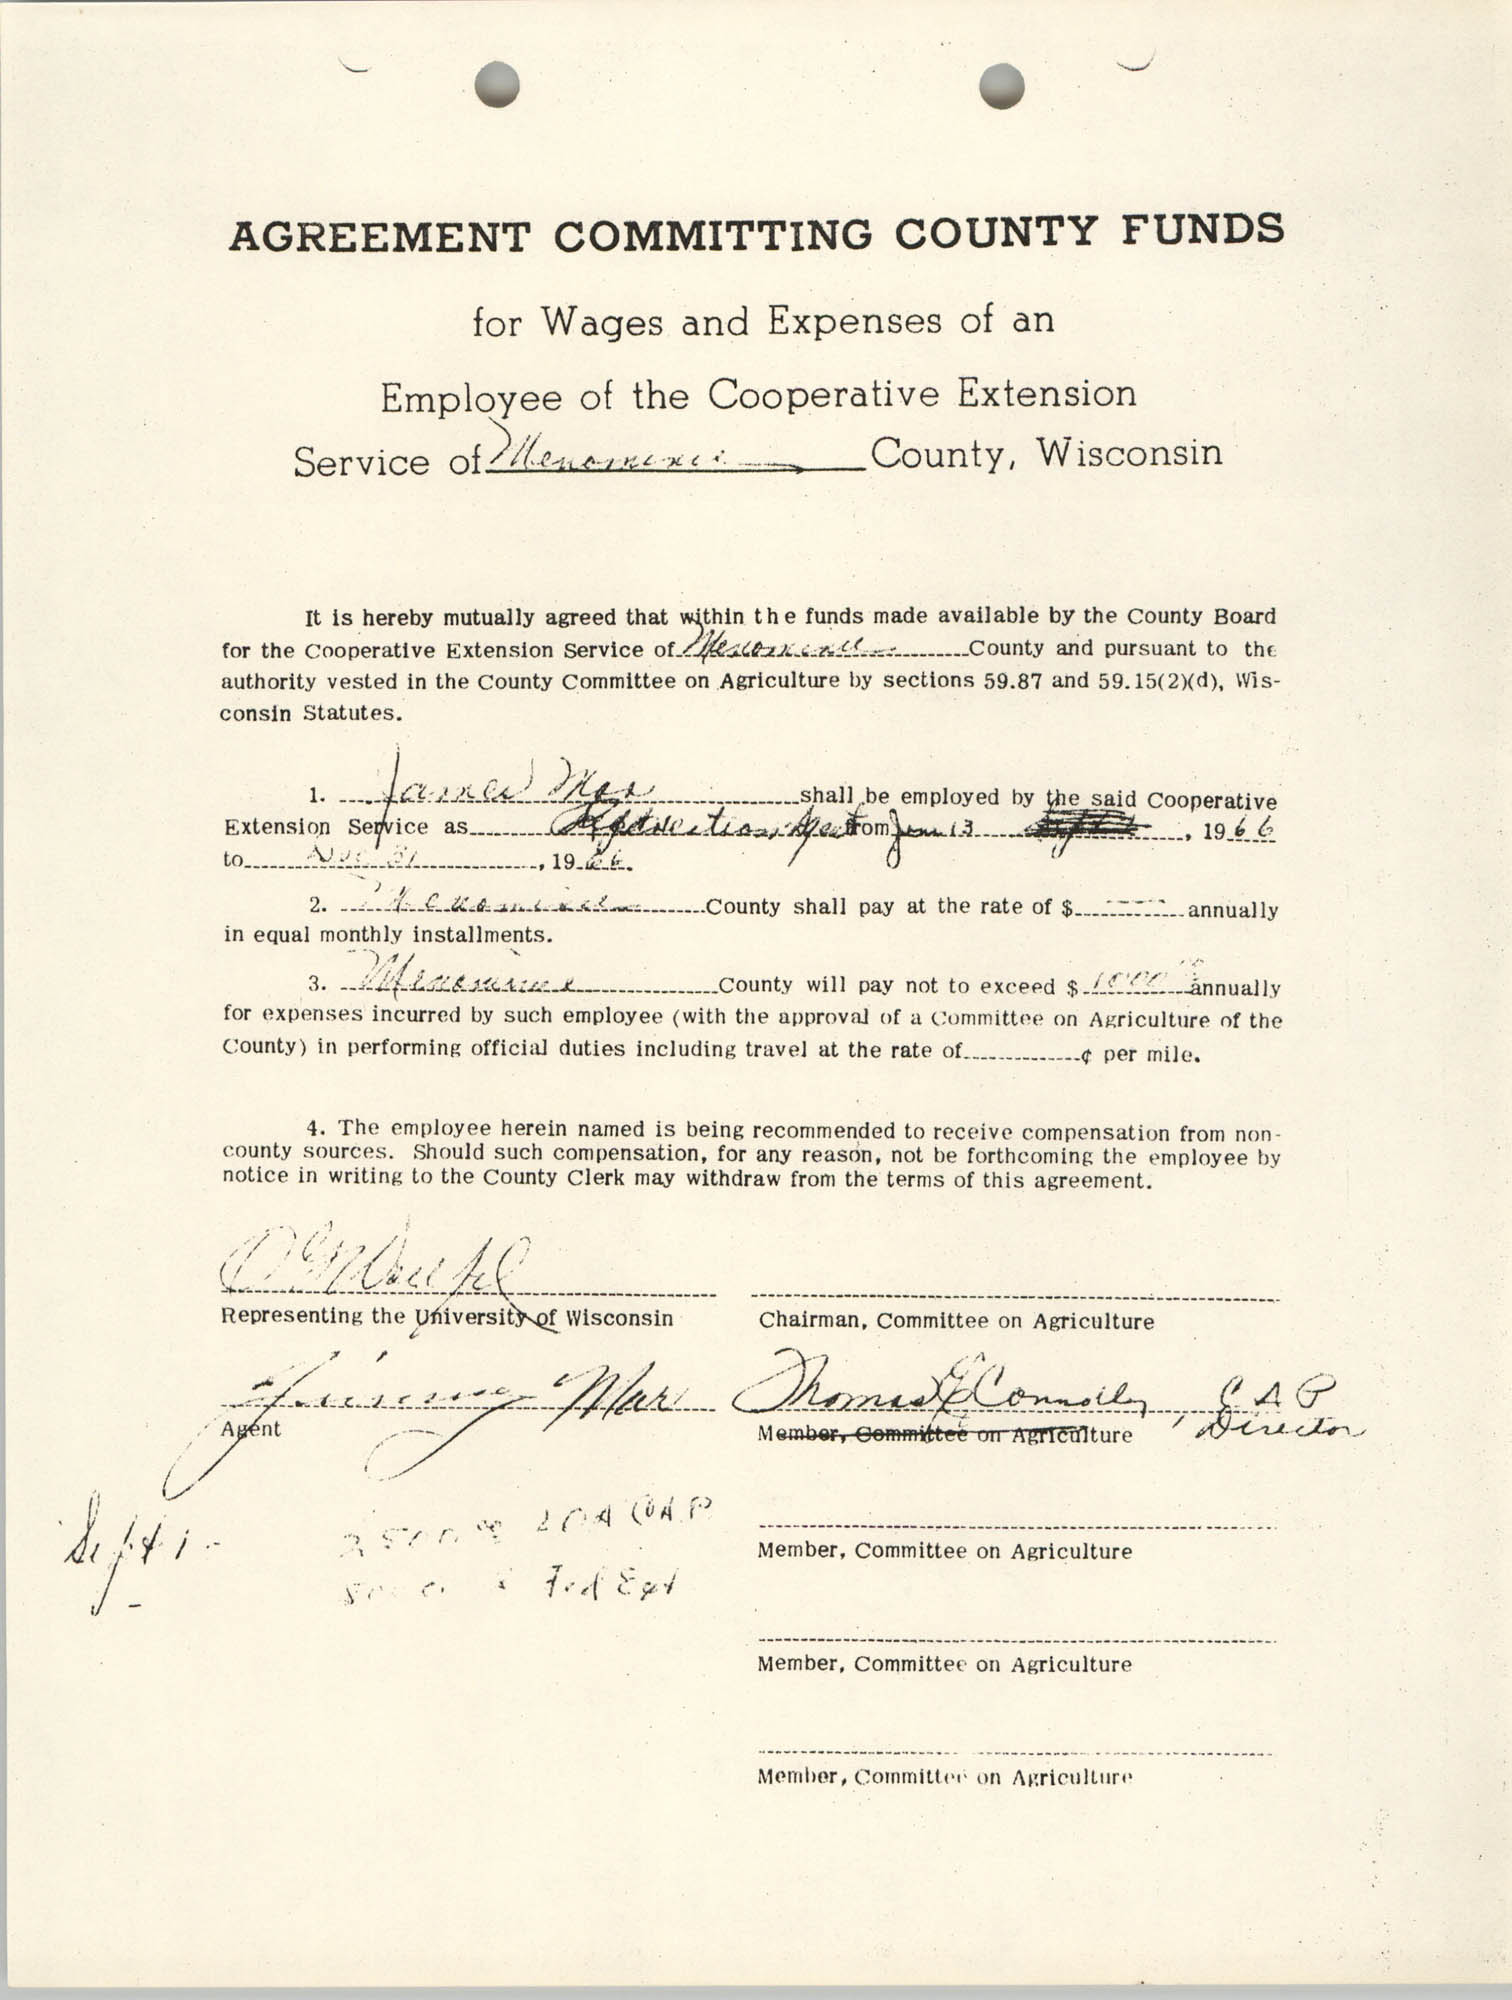 Agreement Committing County Funds, June 13 to November 31, 1966